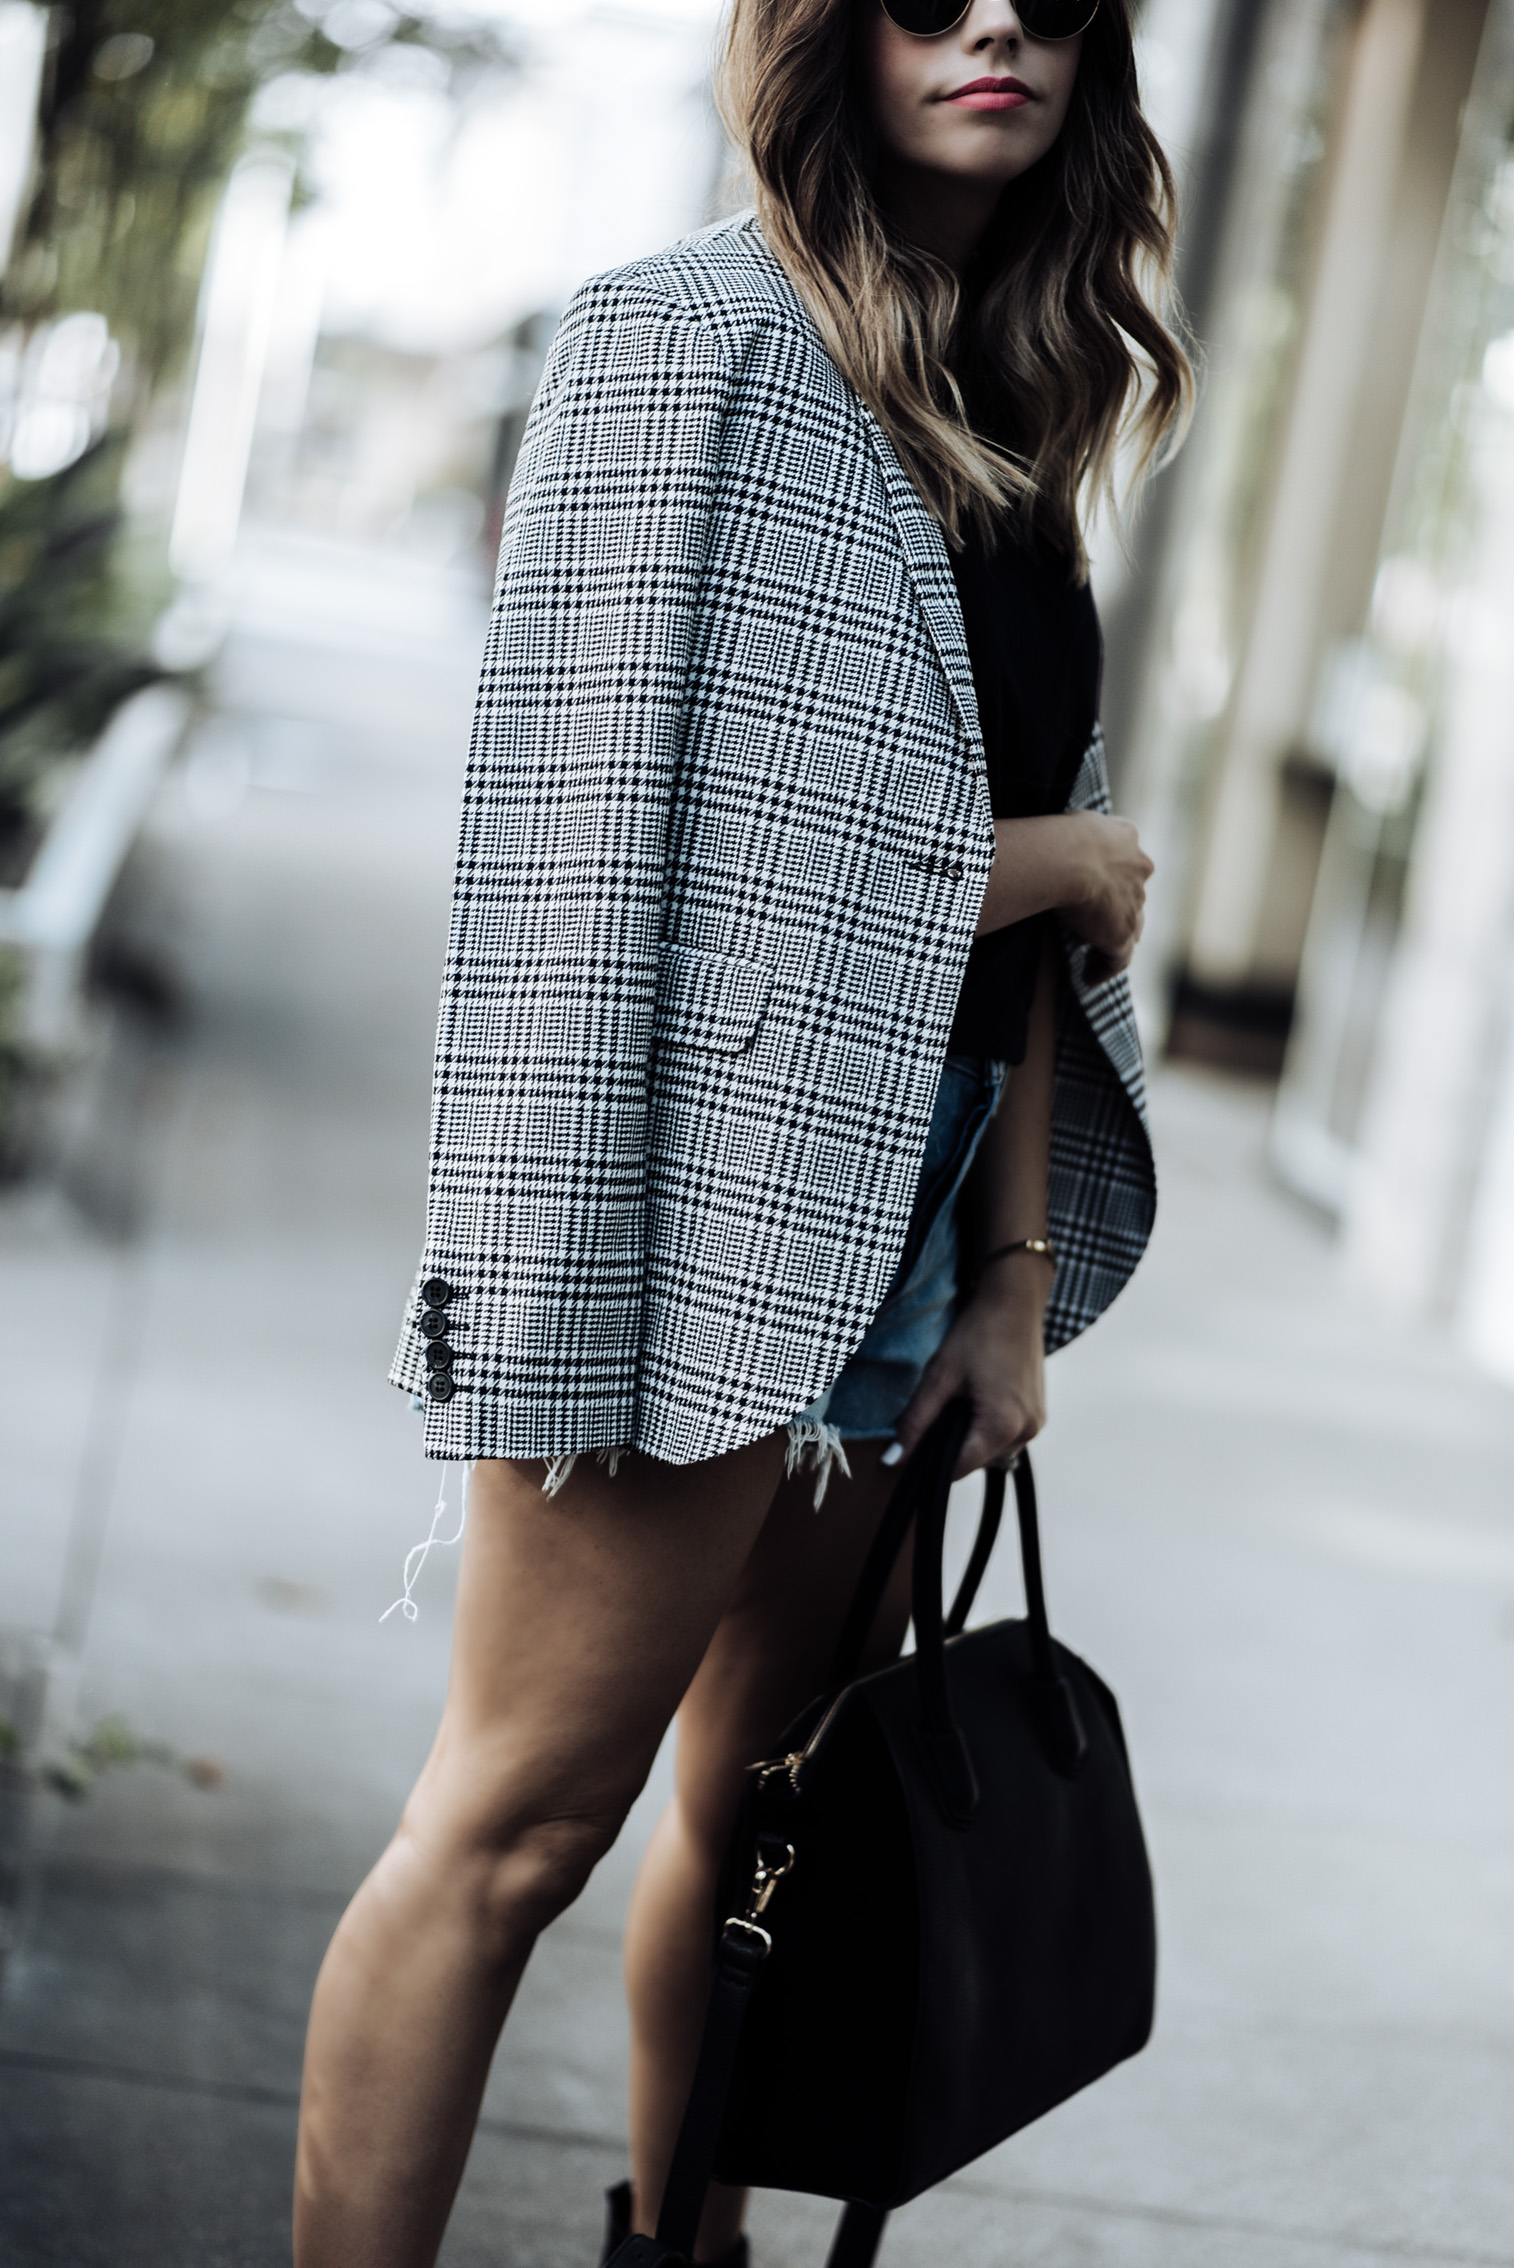 3 check print pieces for under $100  Tiffany Jais fashion and lifestyle blogger of Flaunt and Center   Houston fashion blogger   Streetstyle blog   Personal style online #streetstyle #ginghamoutfits #checkprint #blazeroutfits